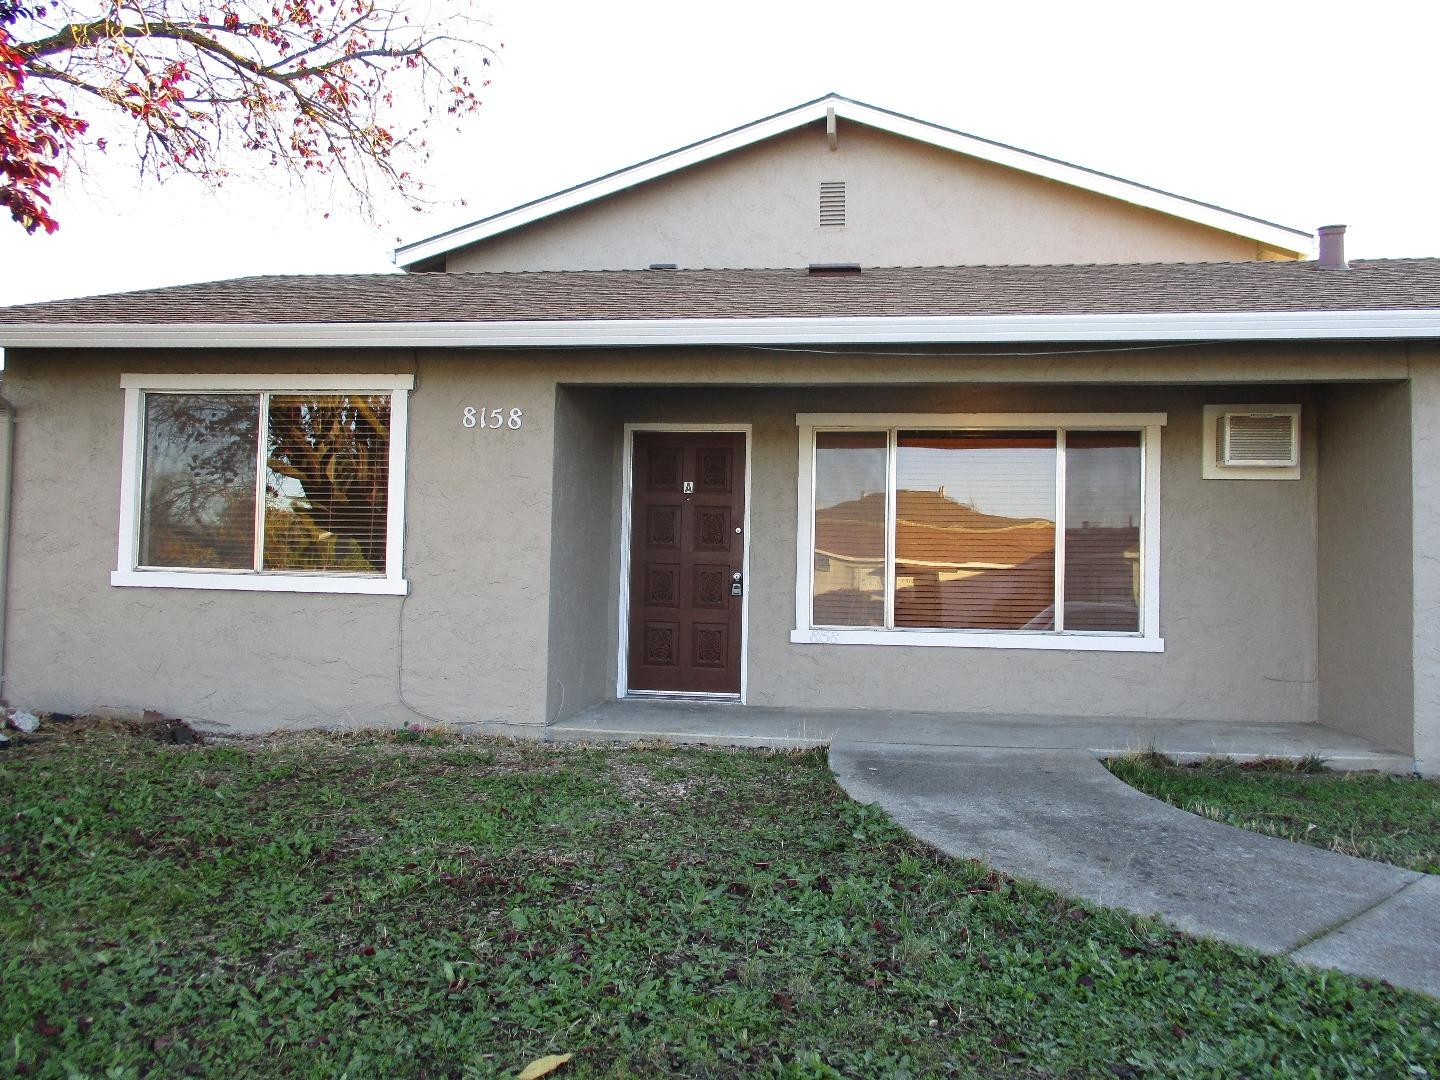 Condominium for Rent at 8158 Kelton Drive 8158 Kelton Drive Gilroy, California 95020 United States